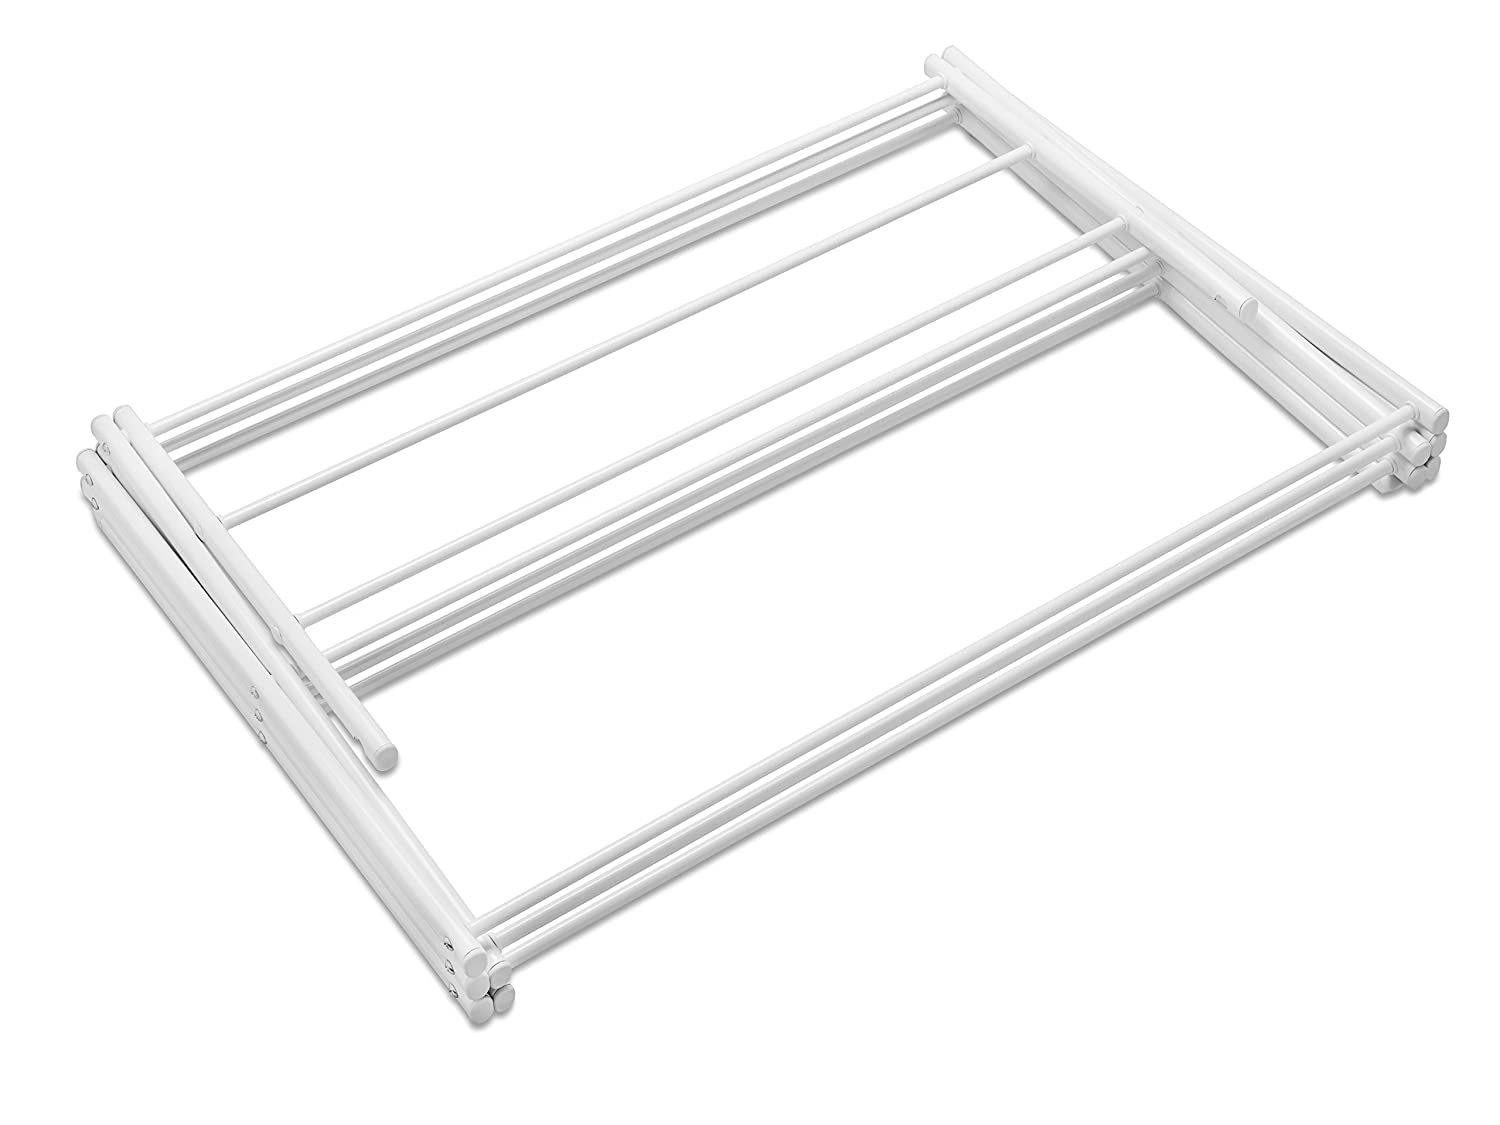 Whitmor 6023 741 Folding Clothes Drying Rack White Rust Proof Guarantee Premium Quality Co Uk Kitchen Home